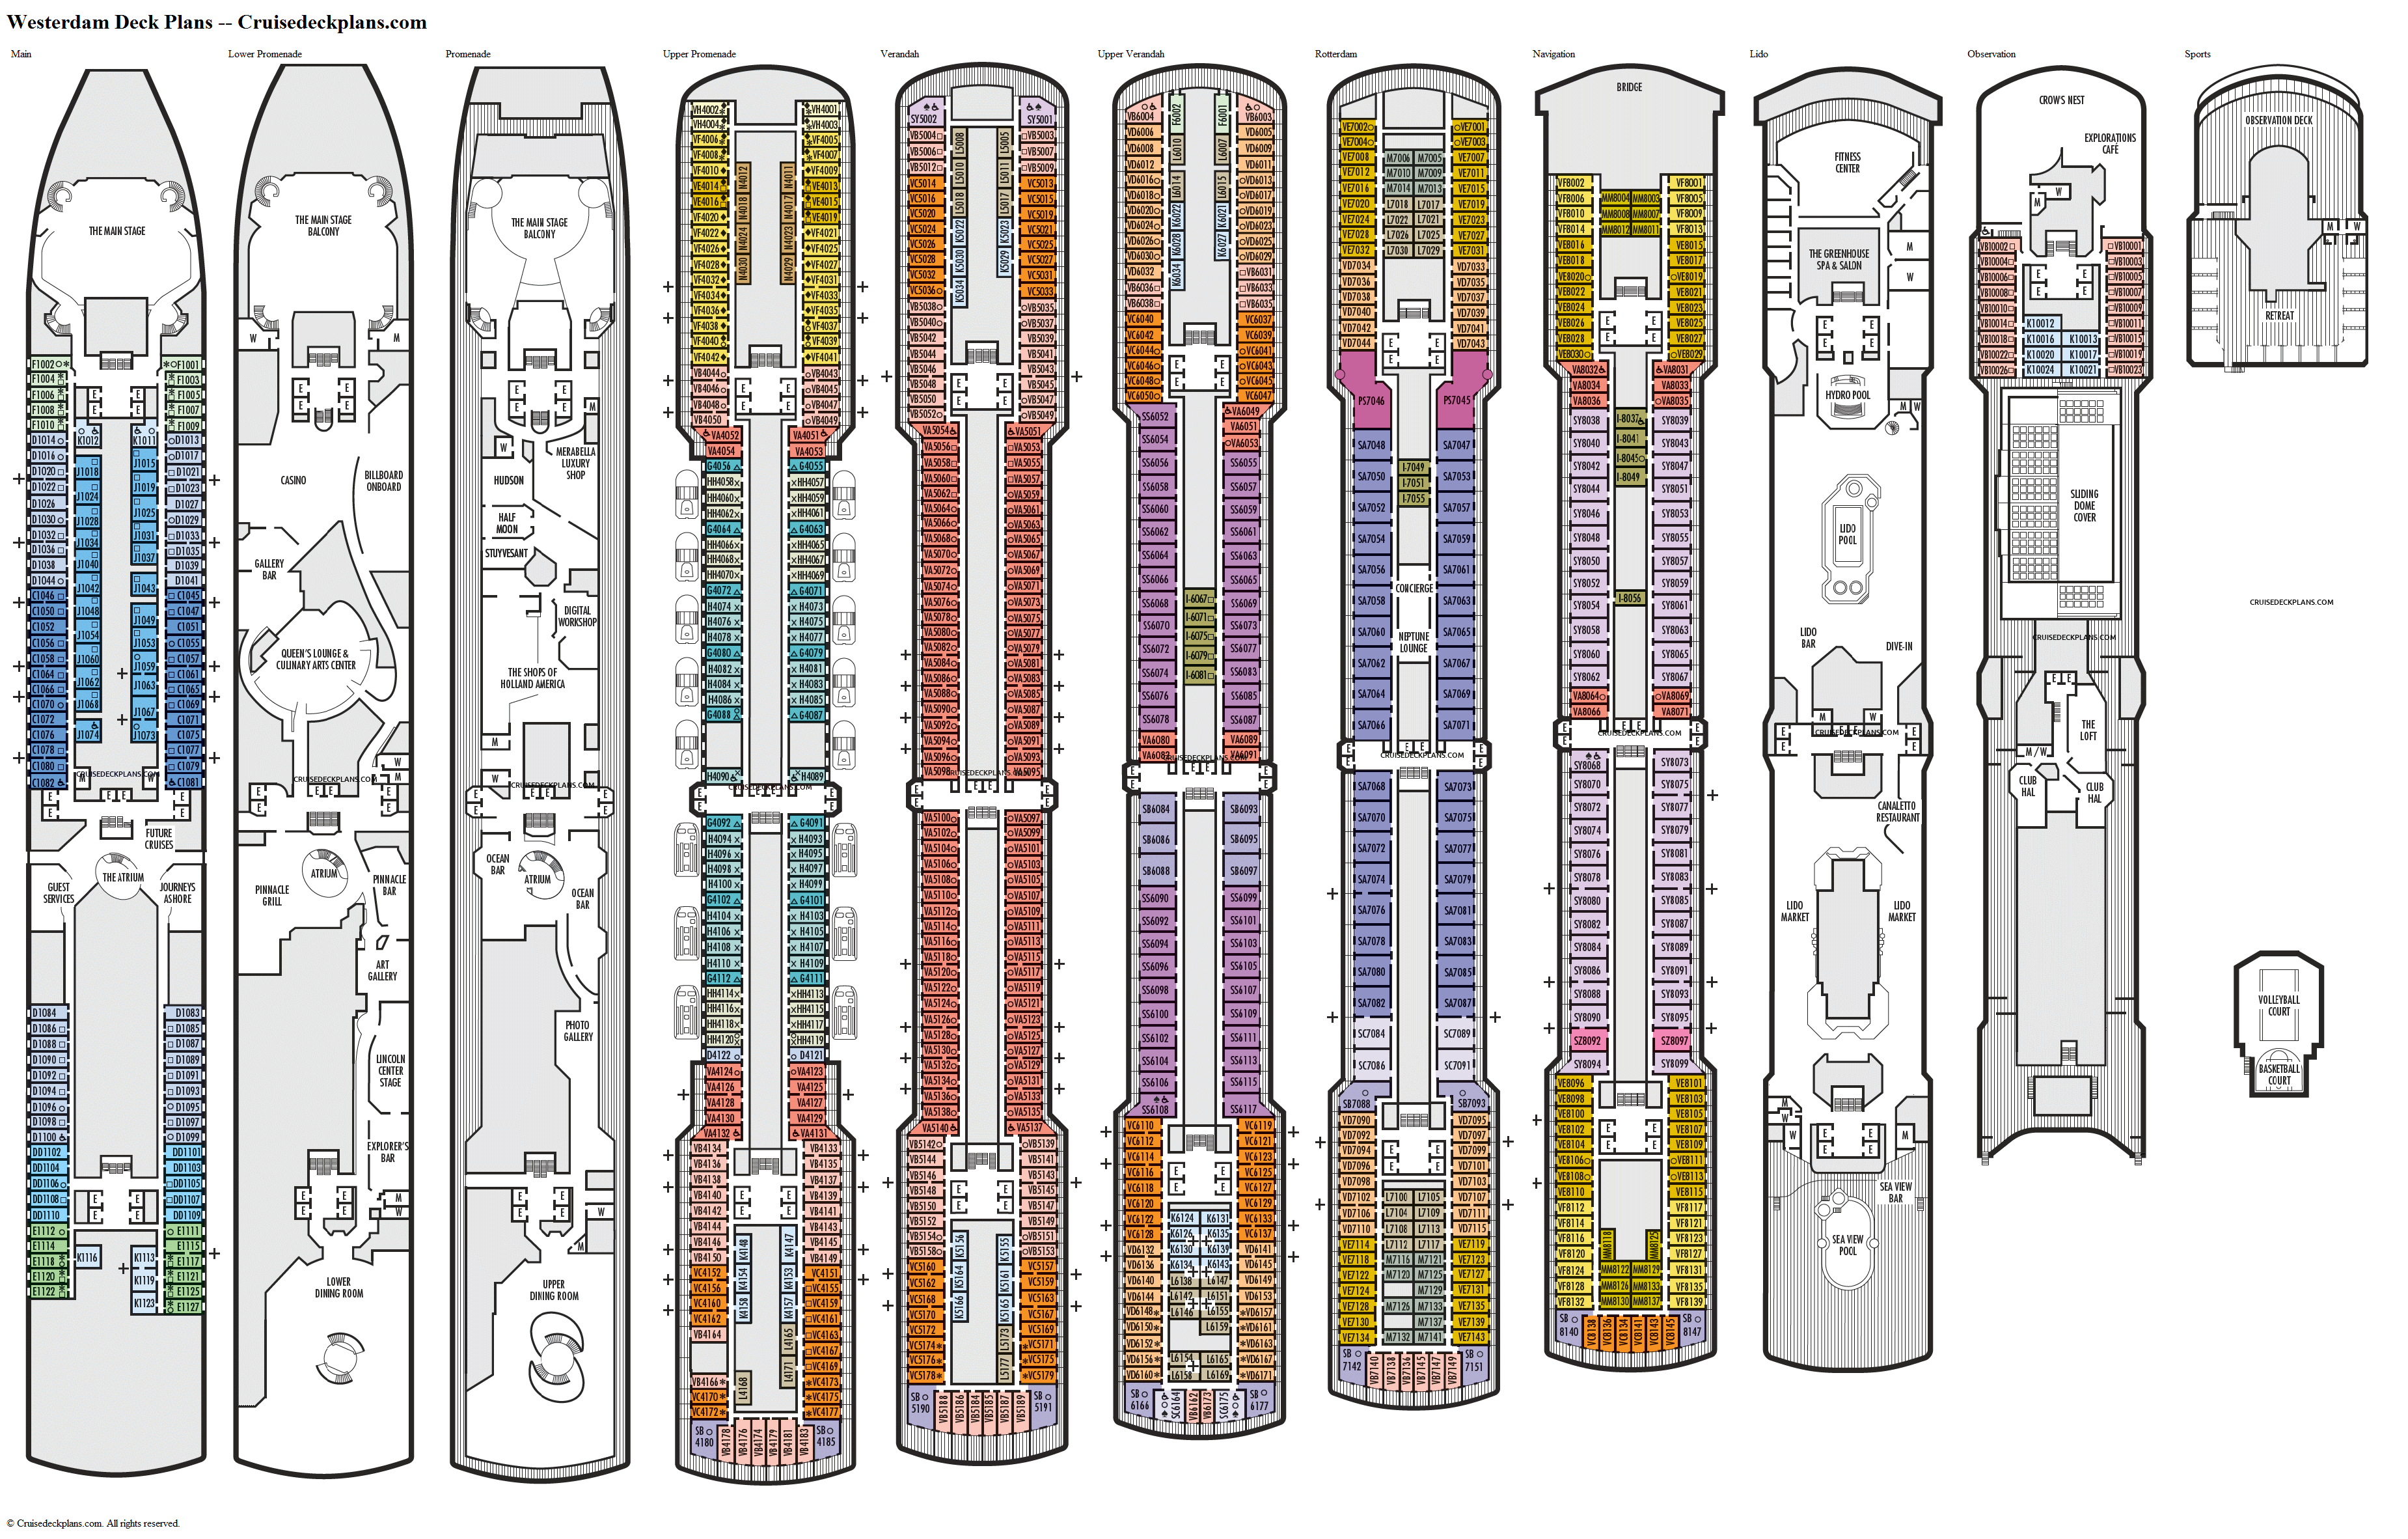 Westerdam deck plans image